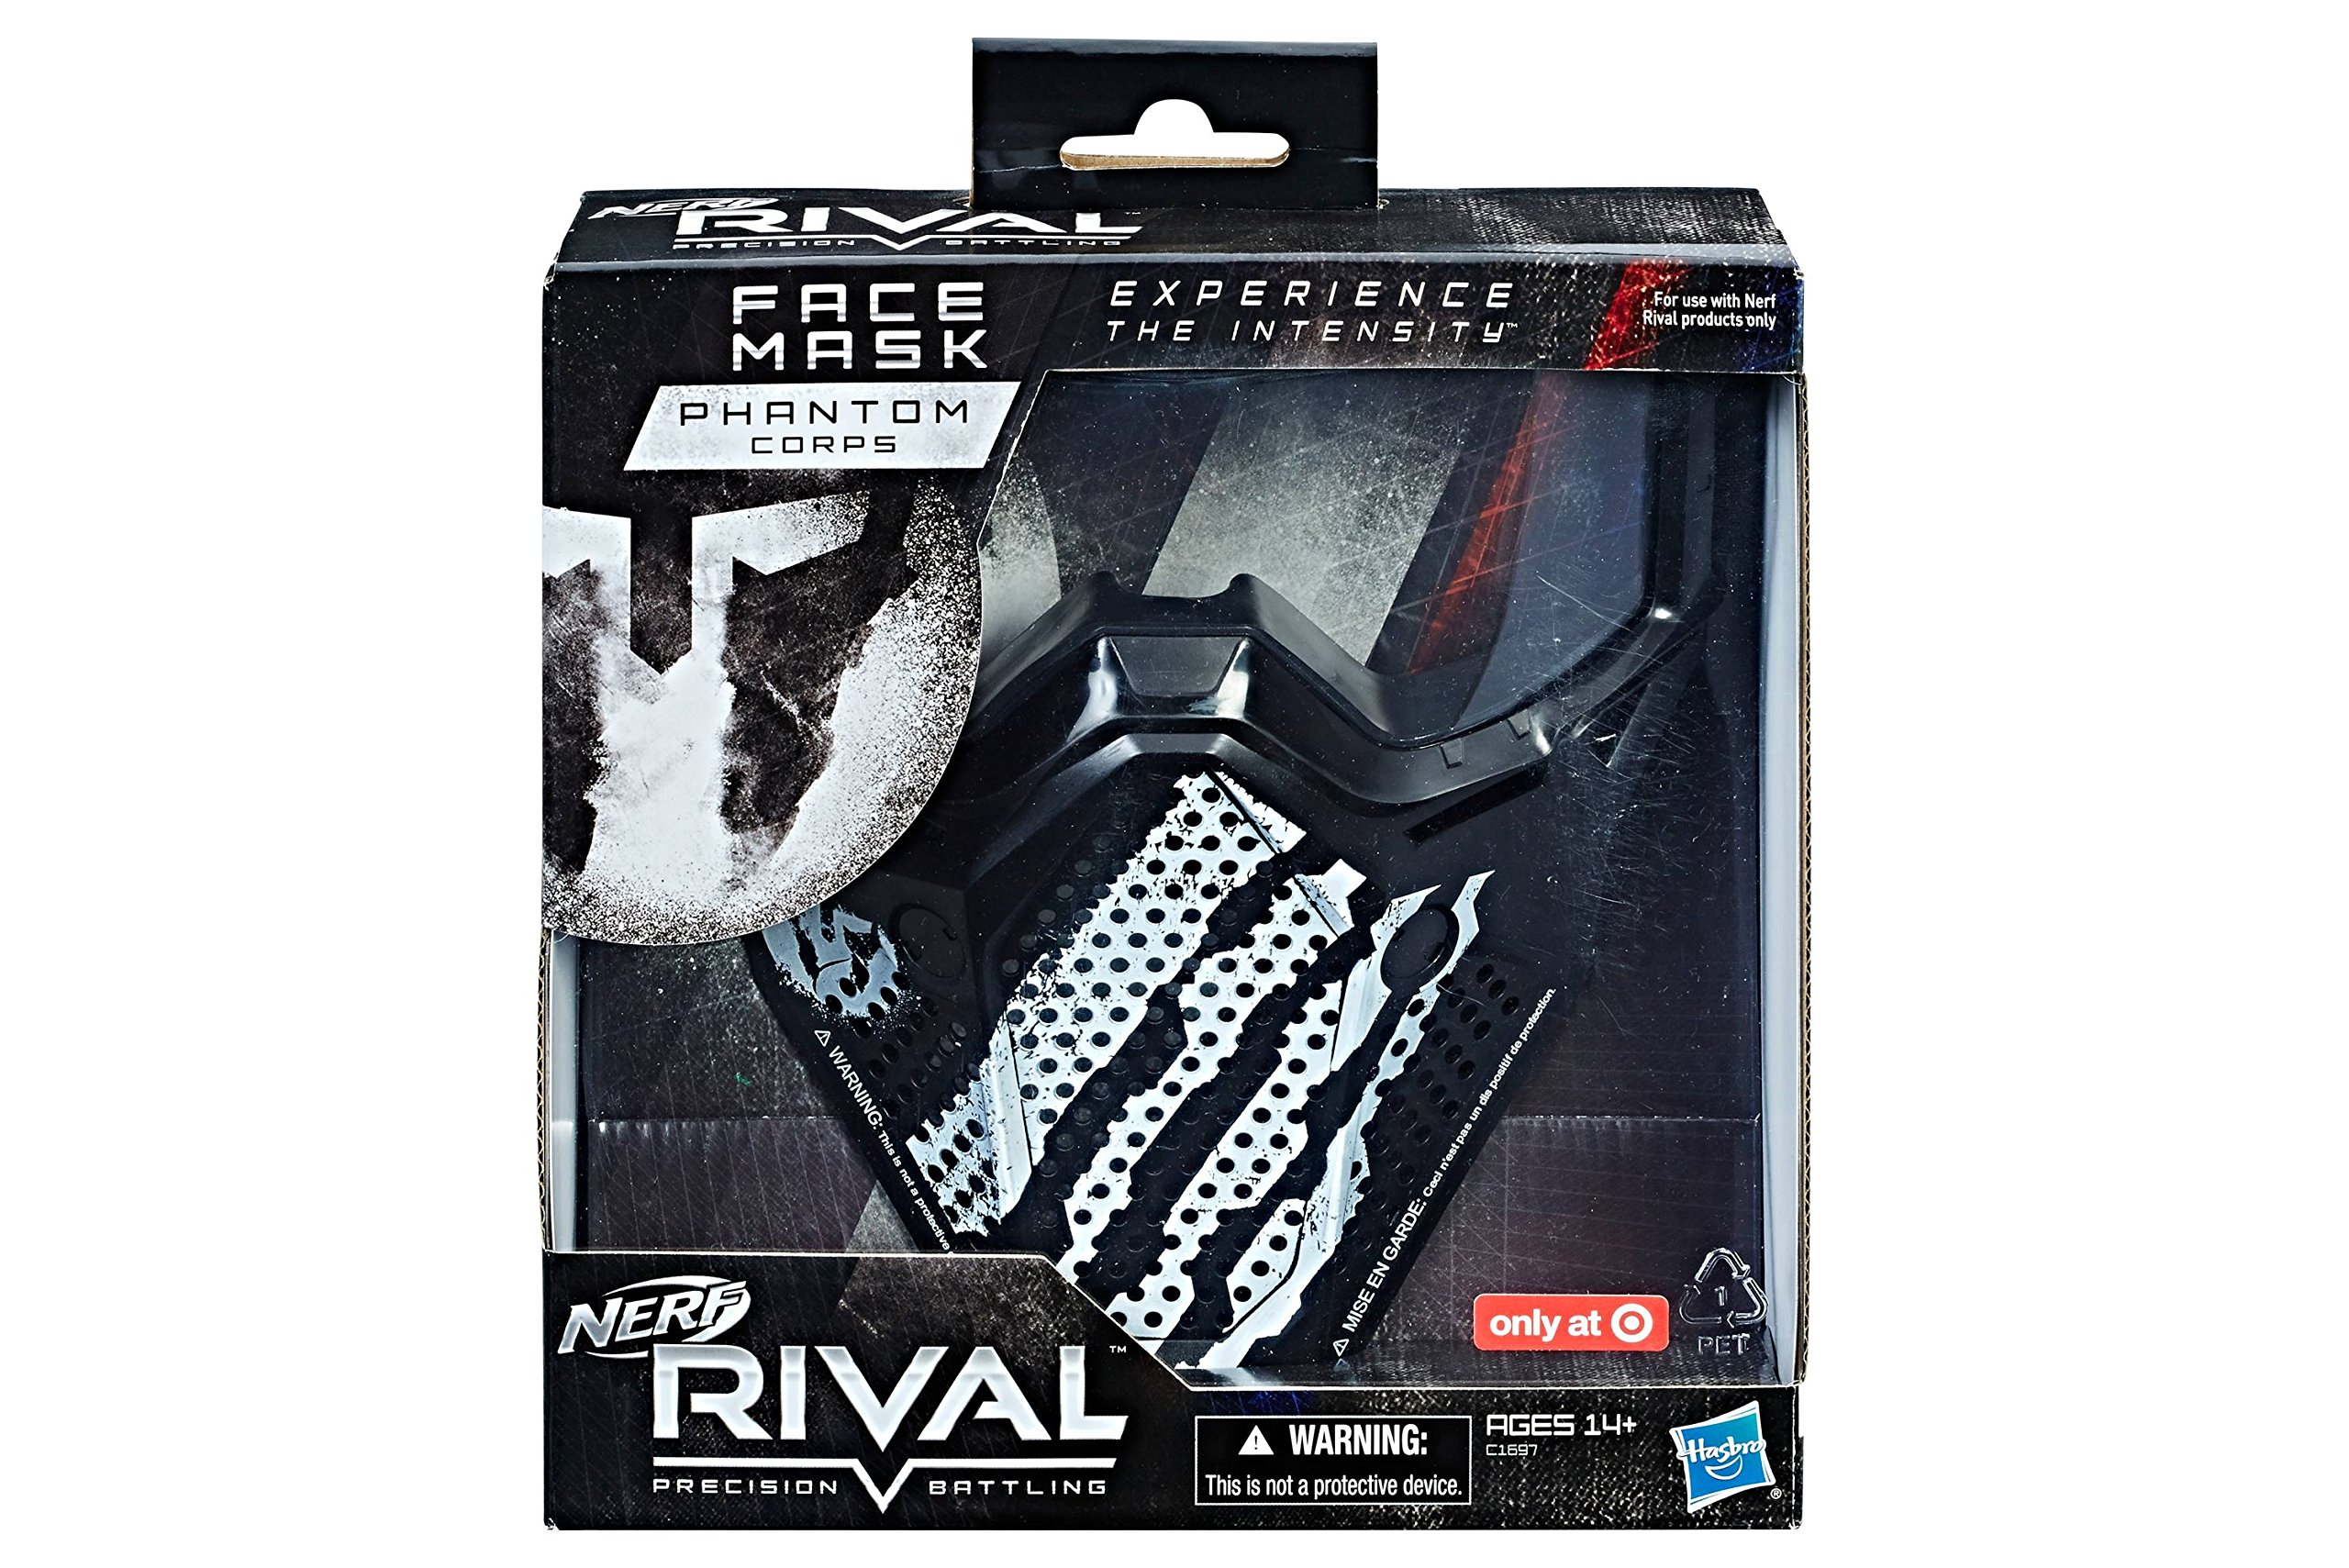 NERF Nerf Rival Phantom Corps Face Mask Grown Up Toys Toys & Games TIBS